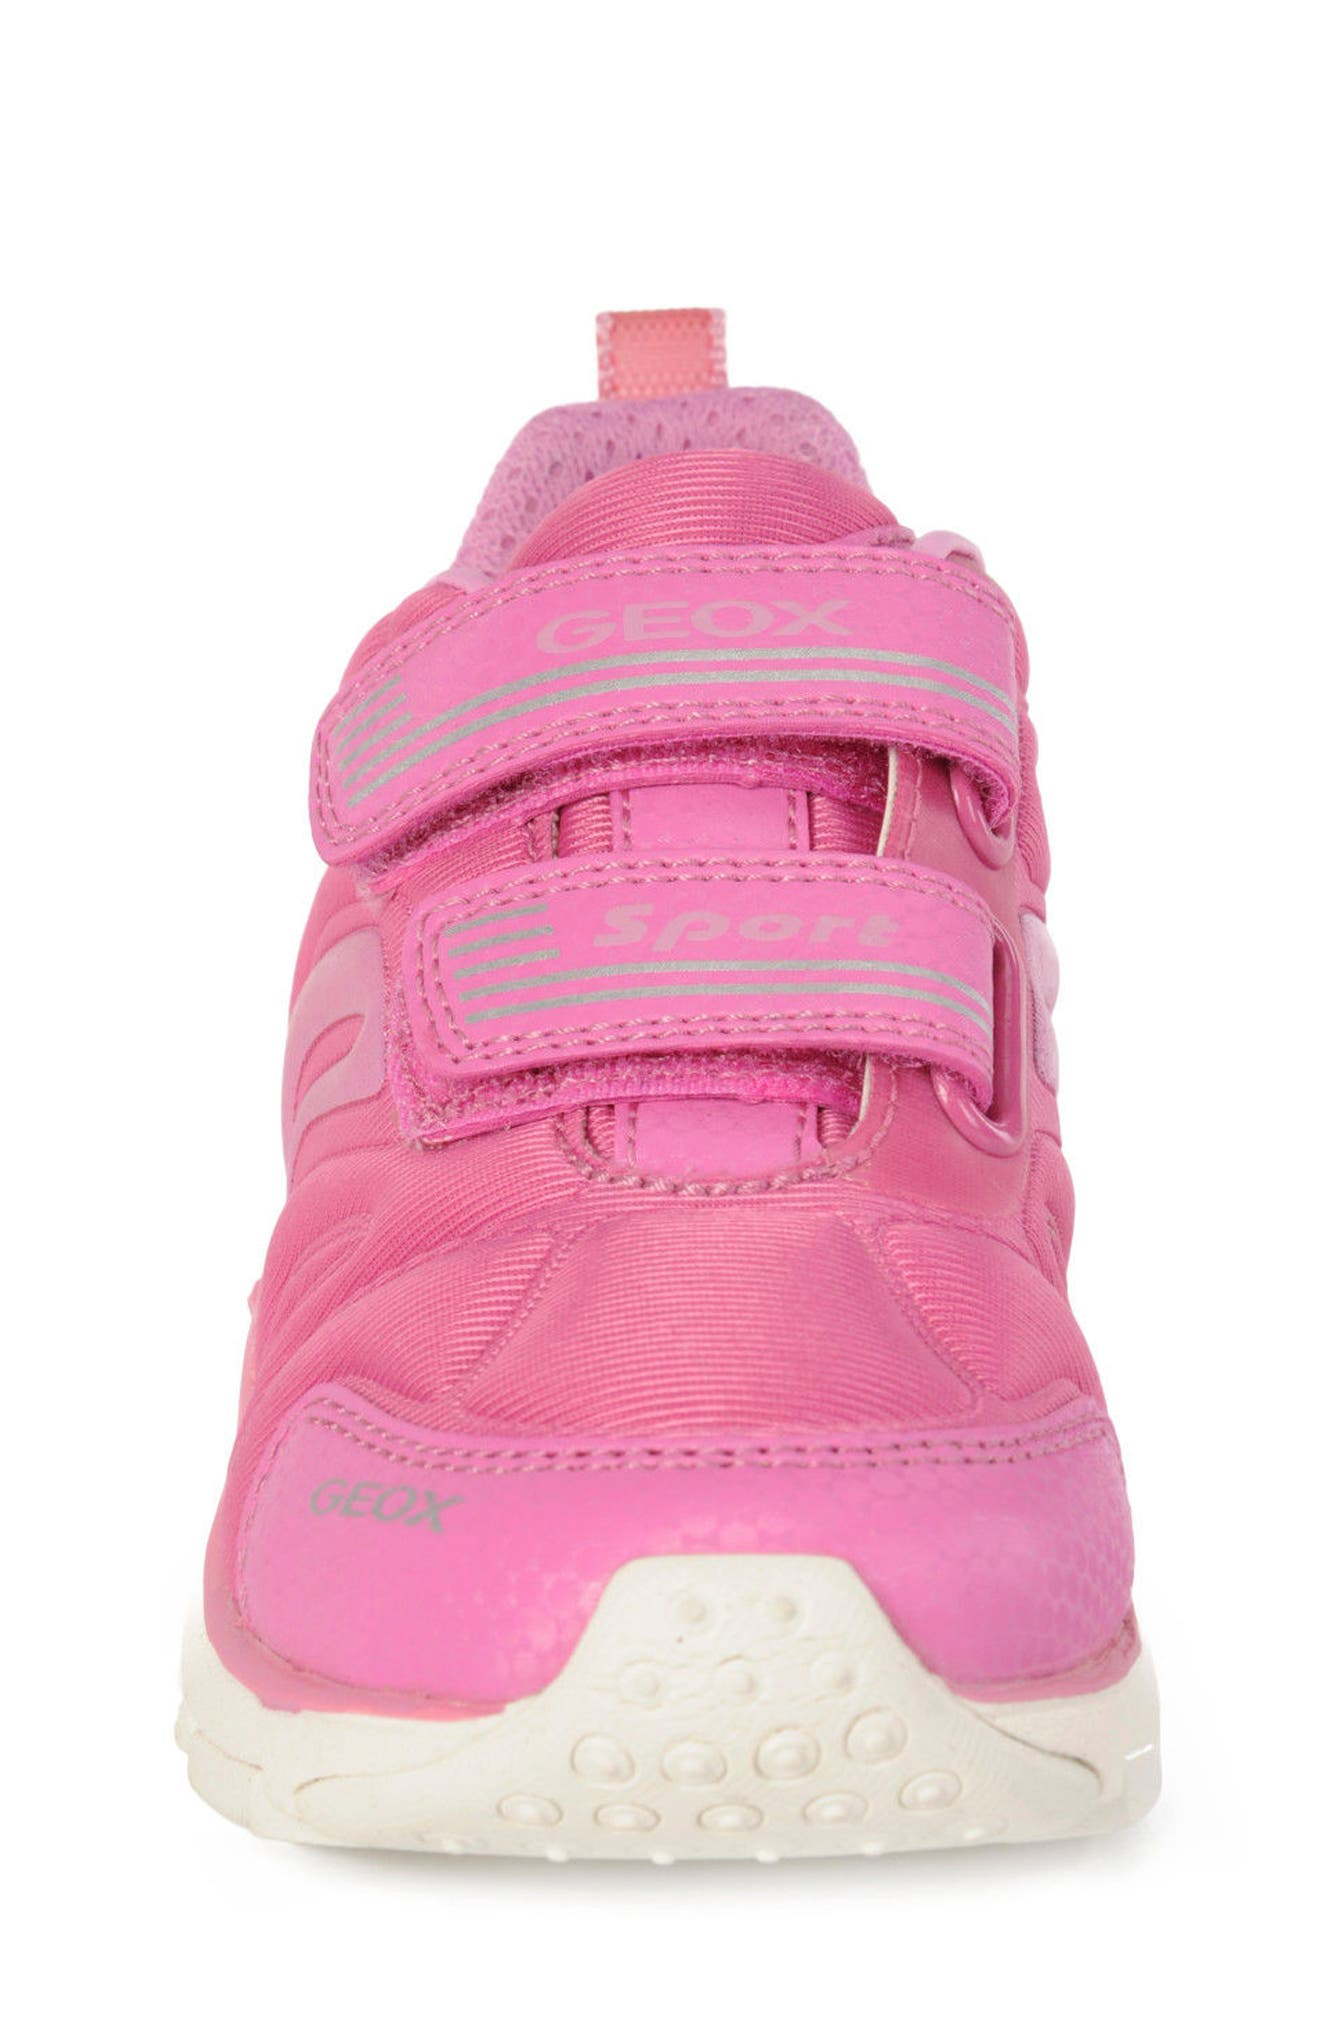 Alternate Image 4  - Geox Torque Sneaker (Toddler, Little Kid & Big Kid)